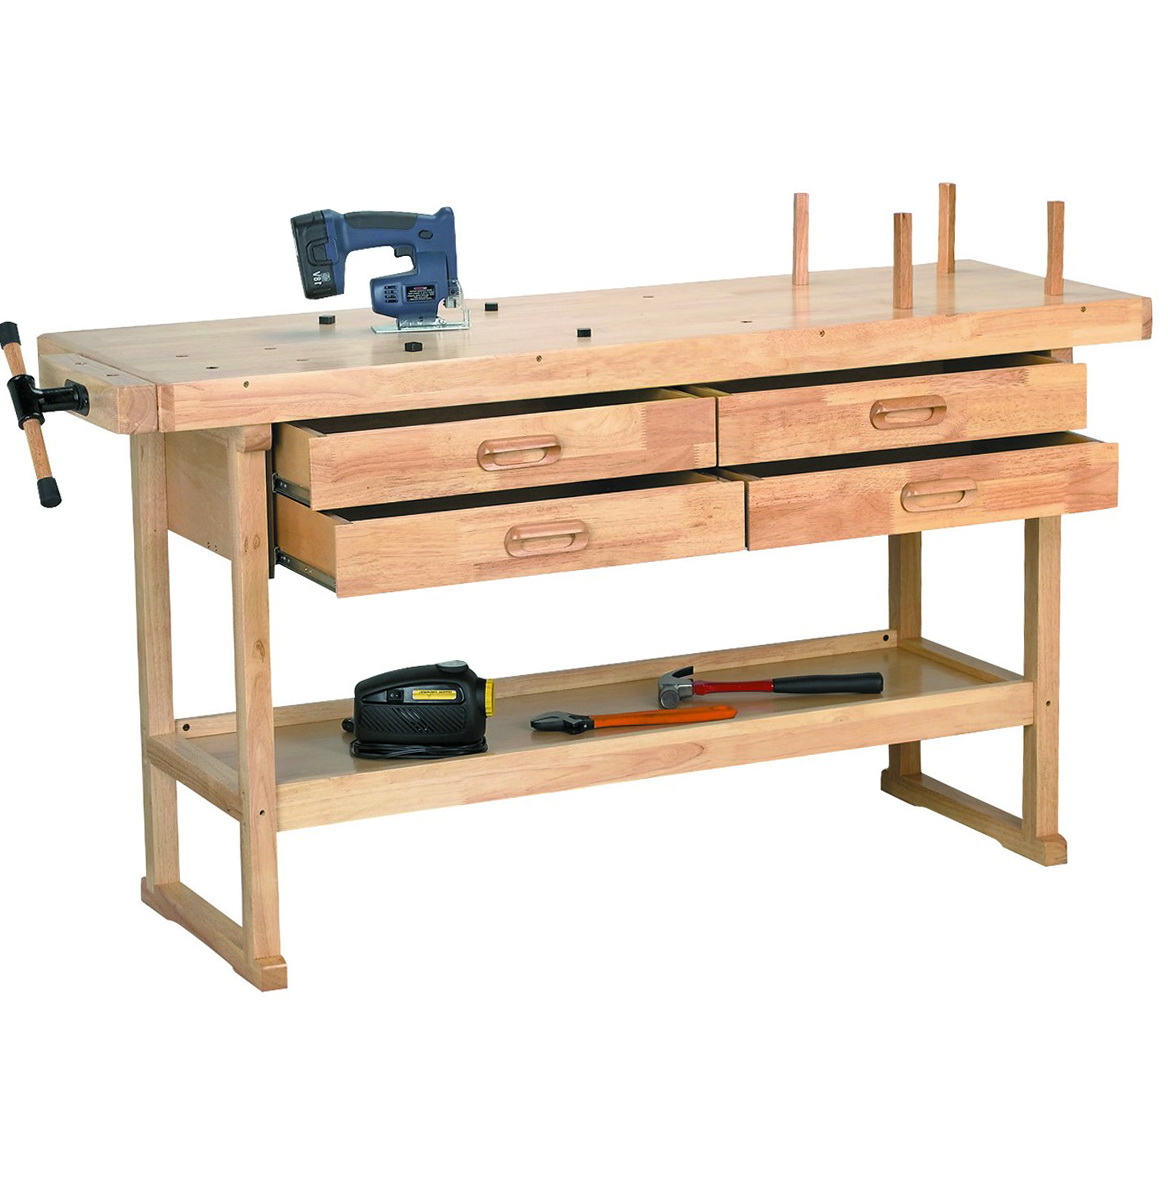 Wooden Work Benches For Sale Wooden Work Bench For Sale Home Design Ideas